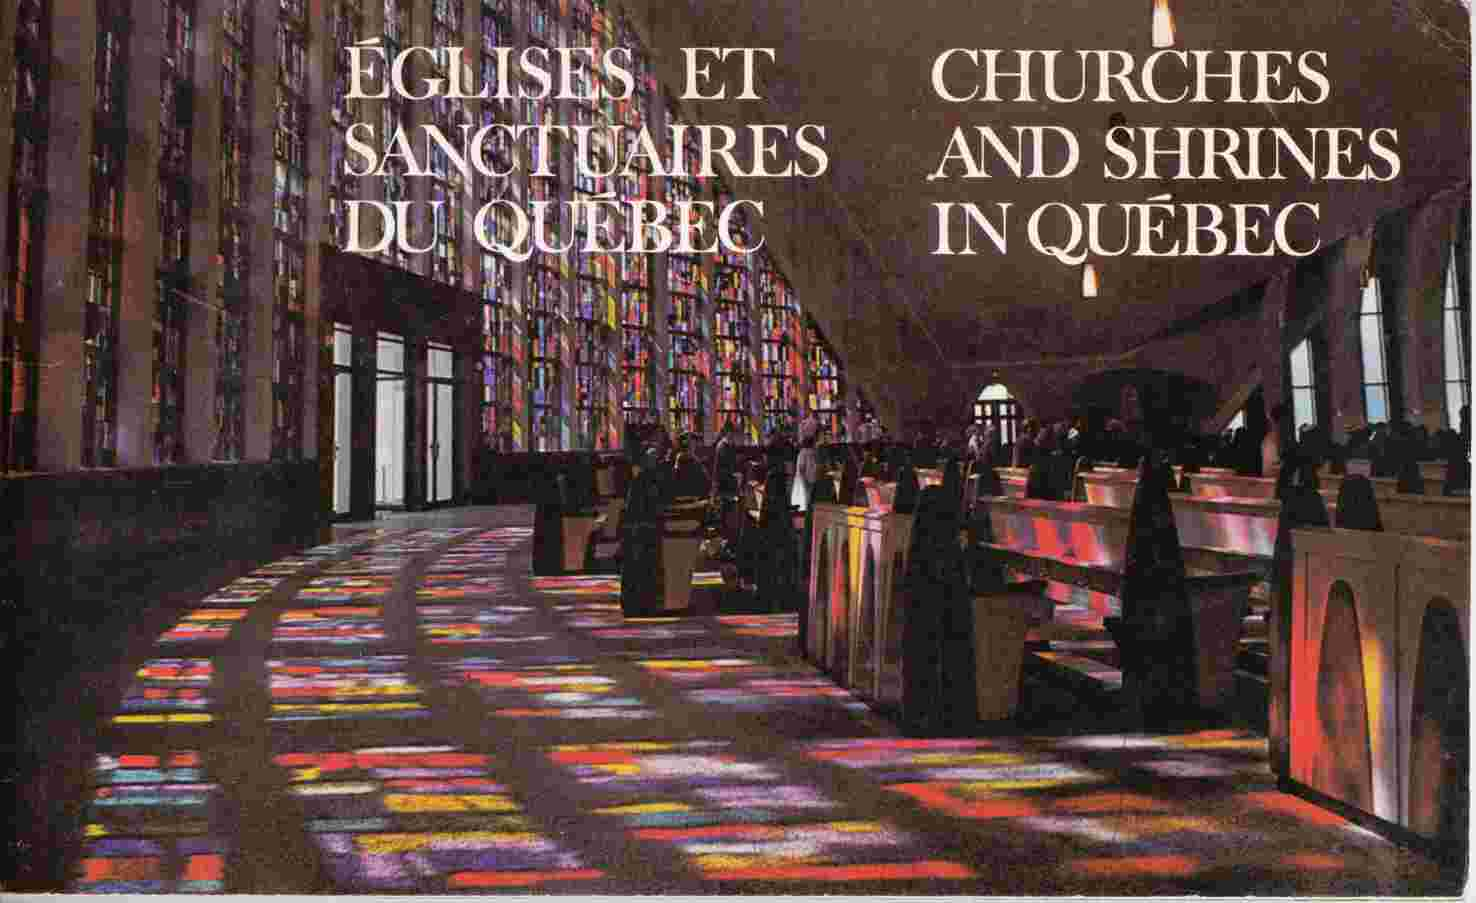 Image for Eglises Et Sanctuaires Du Quebec / Churches and Shrines in Quebec